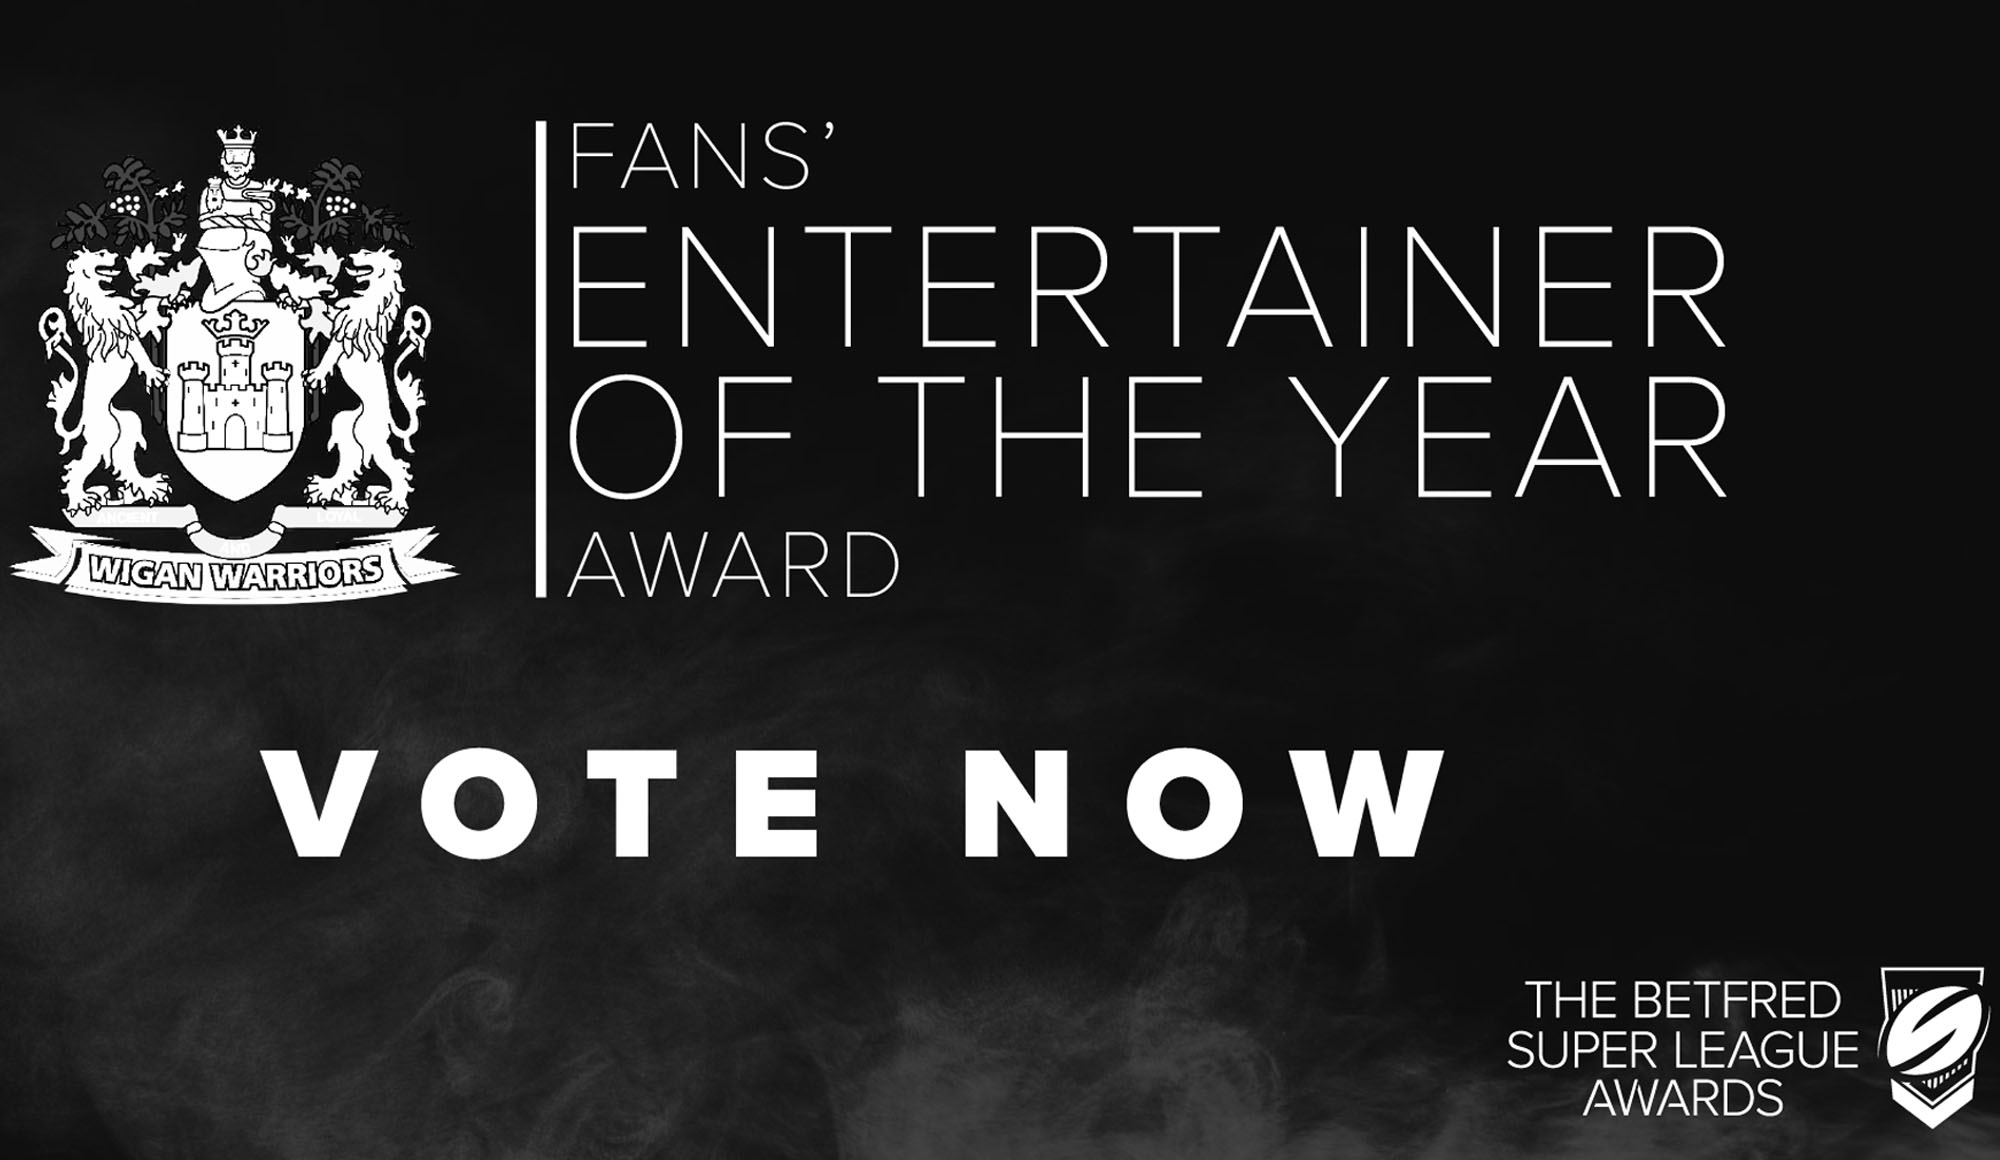 Fans Entertainer of the Year Award